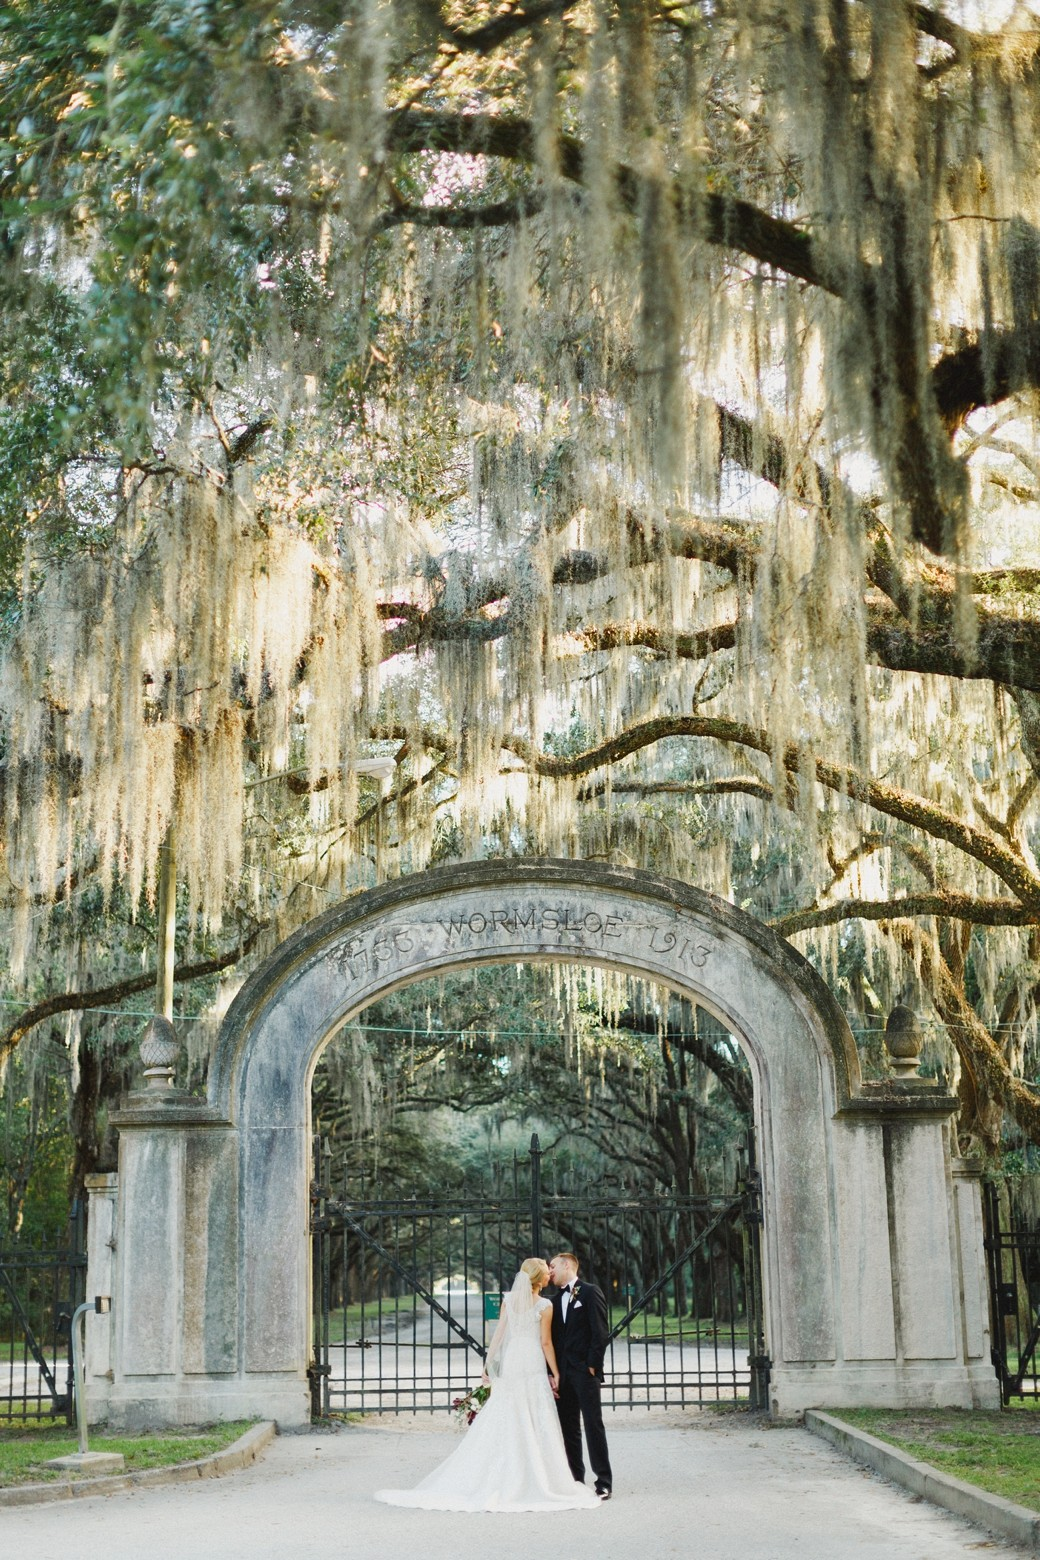 Wormsloe Plantation - Savannah, Georgia - wedding venues